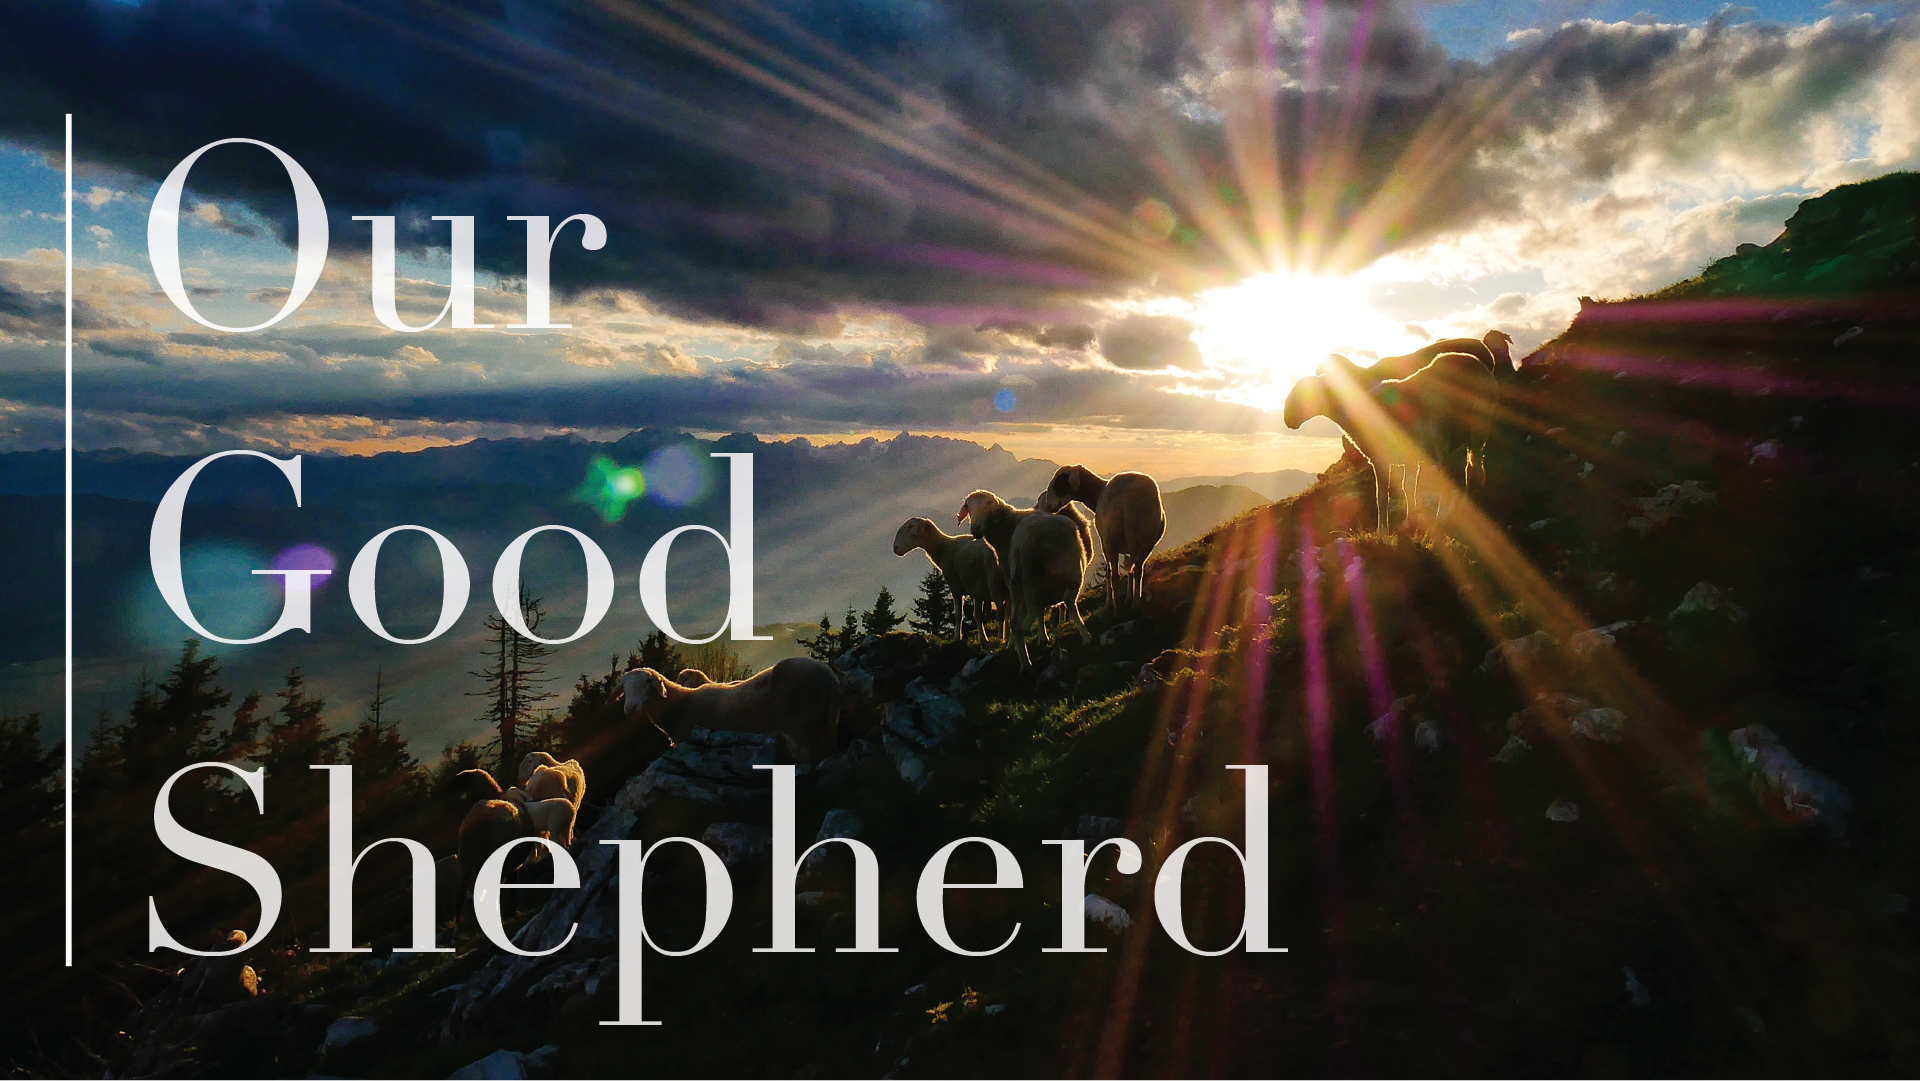 Our Good Shepherd-1920x1080.png